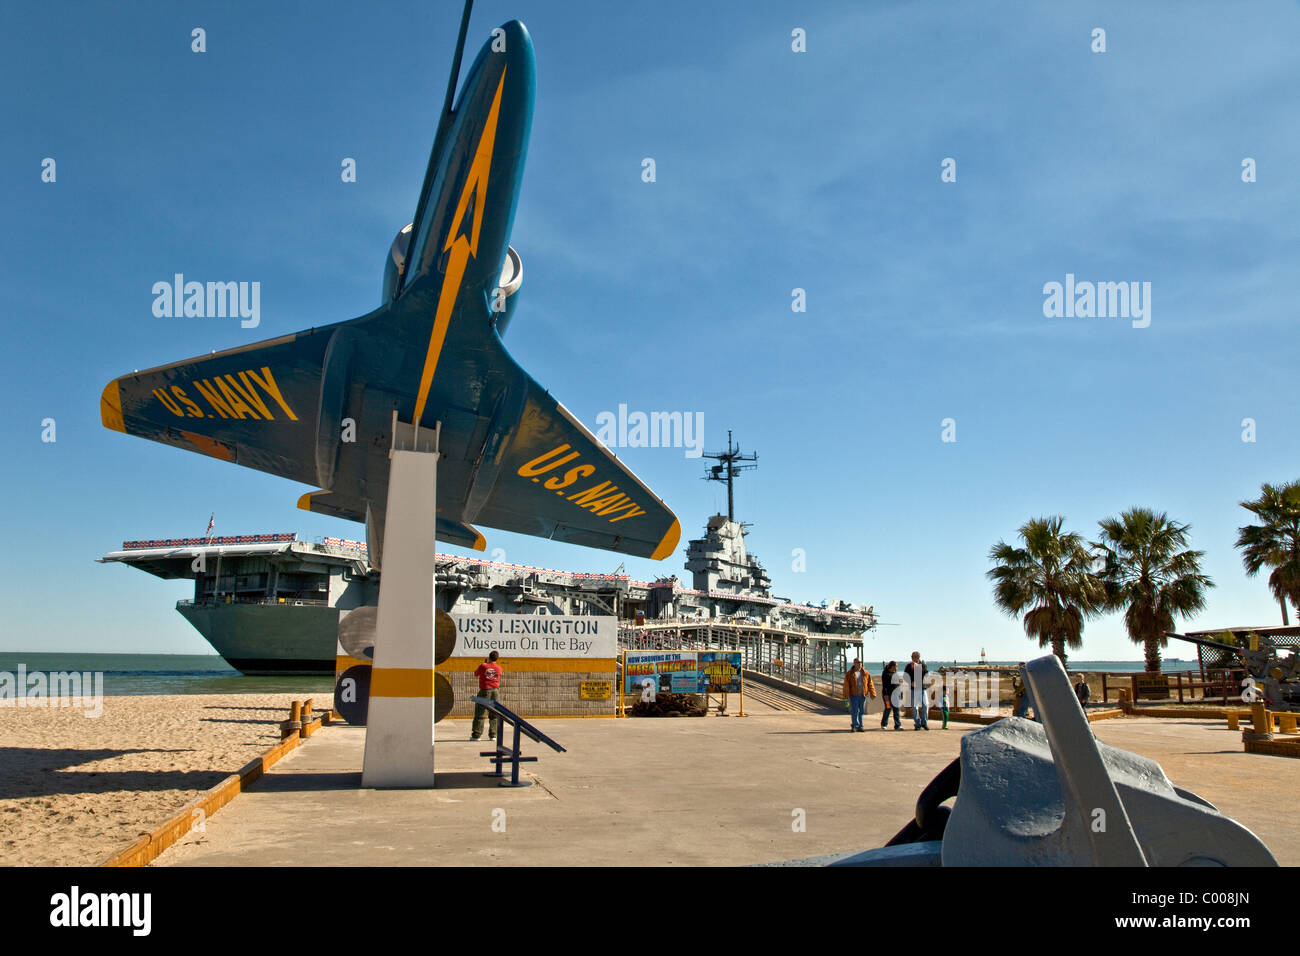 USS Lexington, WW2 Aircraft Carrier, Texas - Stock Image